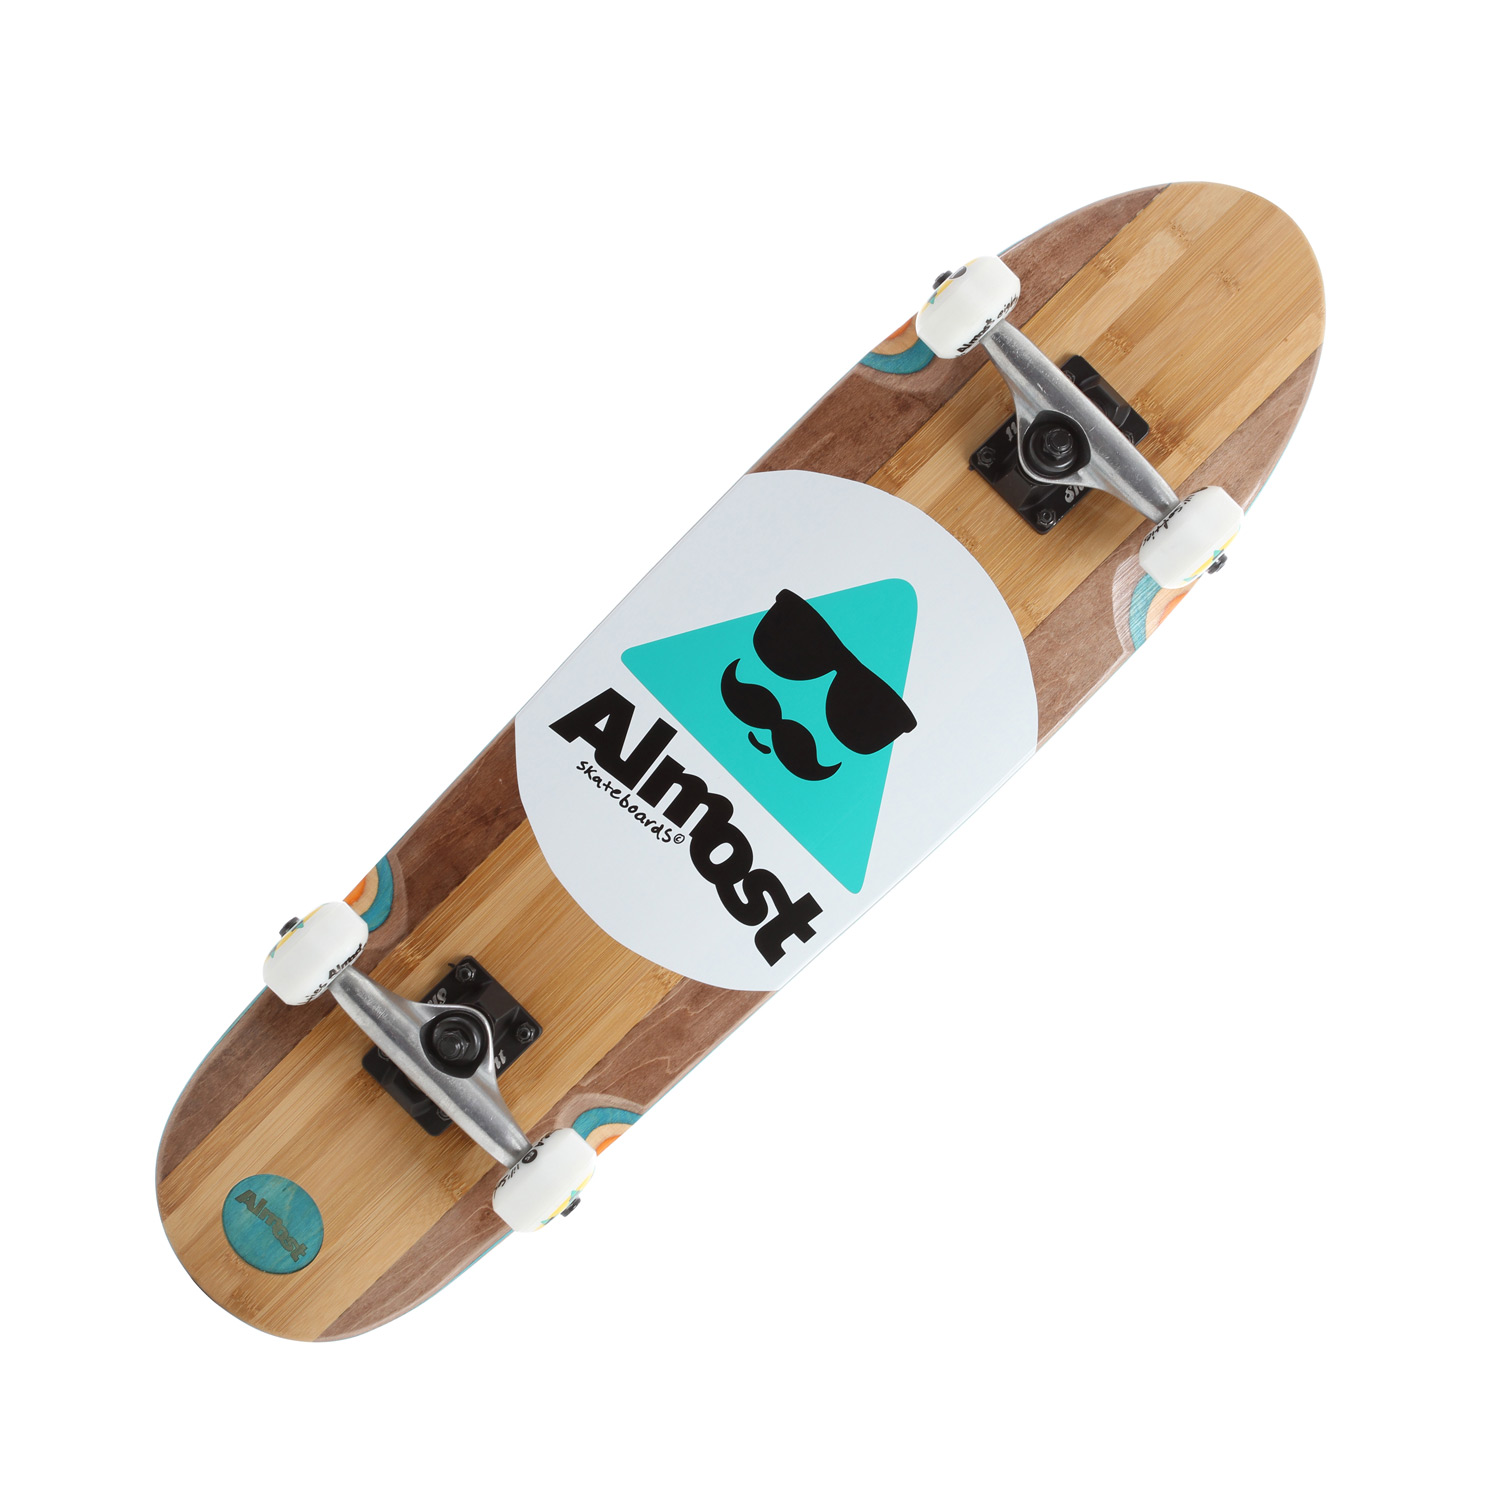 Skateboard Key Features of the Almost Mo Bamboo Longboard Complete: Custom Maple/Bamboo split bottom veneer Custom die cut/ recessed logo Custom die cut grip with top graphic Epoxy Resin glue 53mm 85A wheels - $129.95